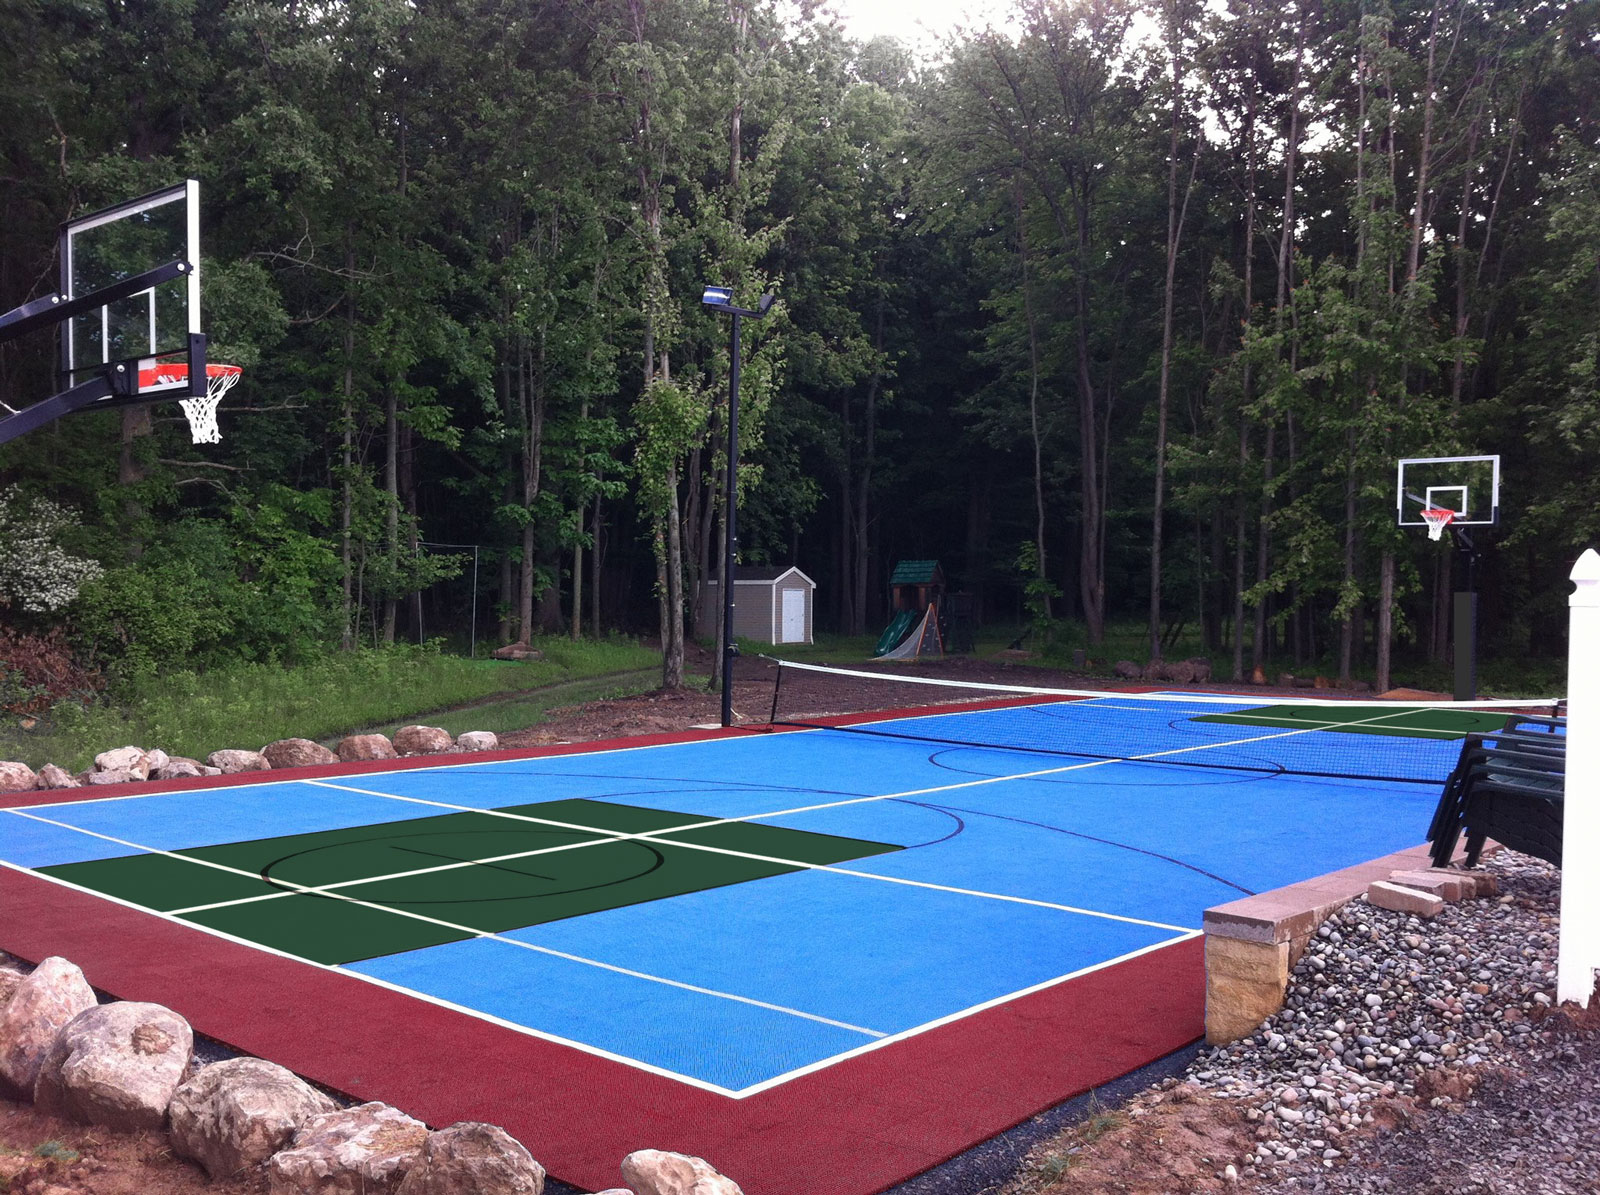 Multicolored multi-court with nets, hoops, and lights